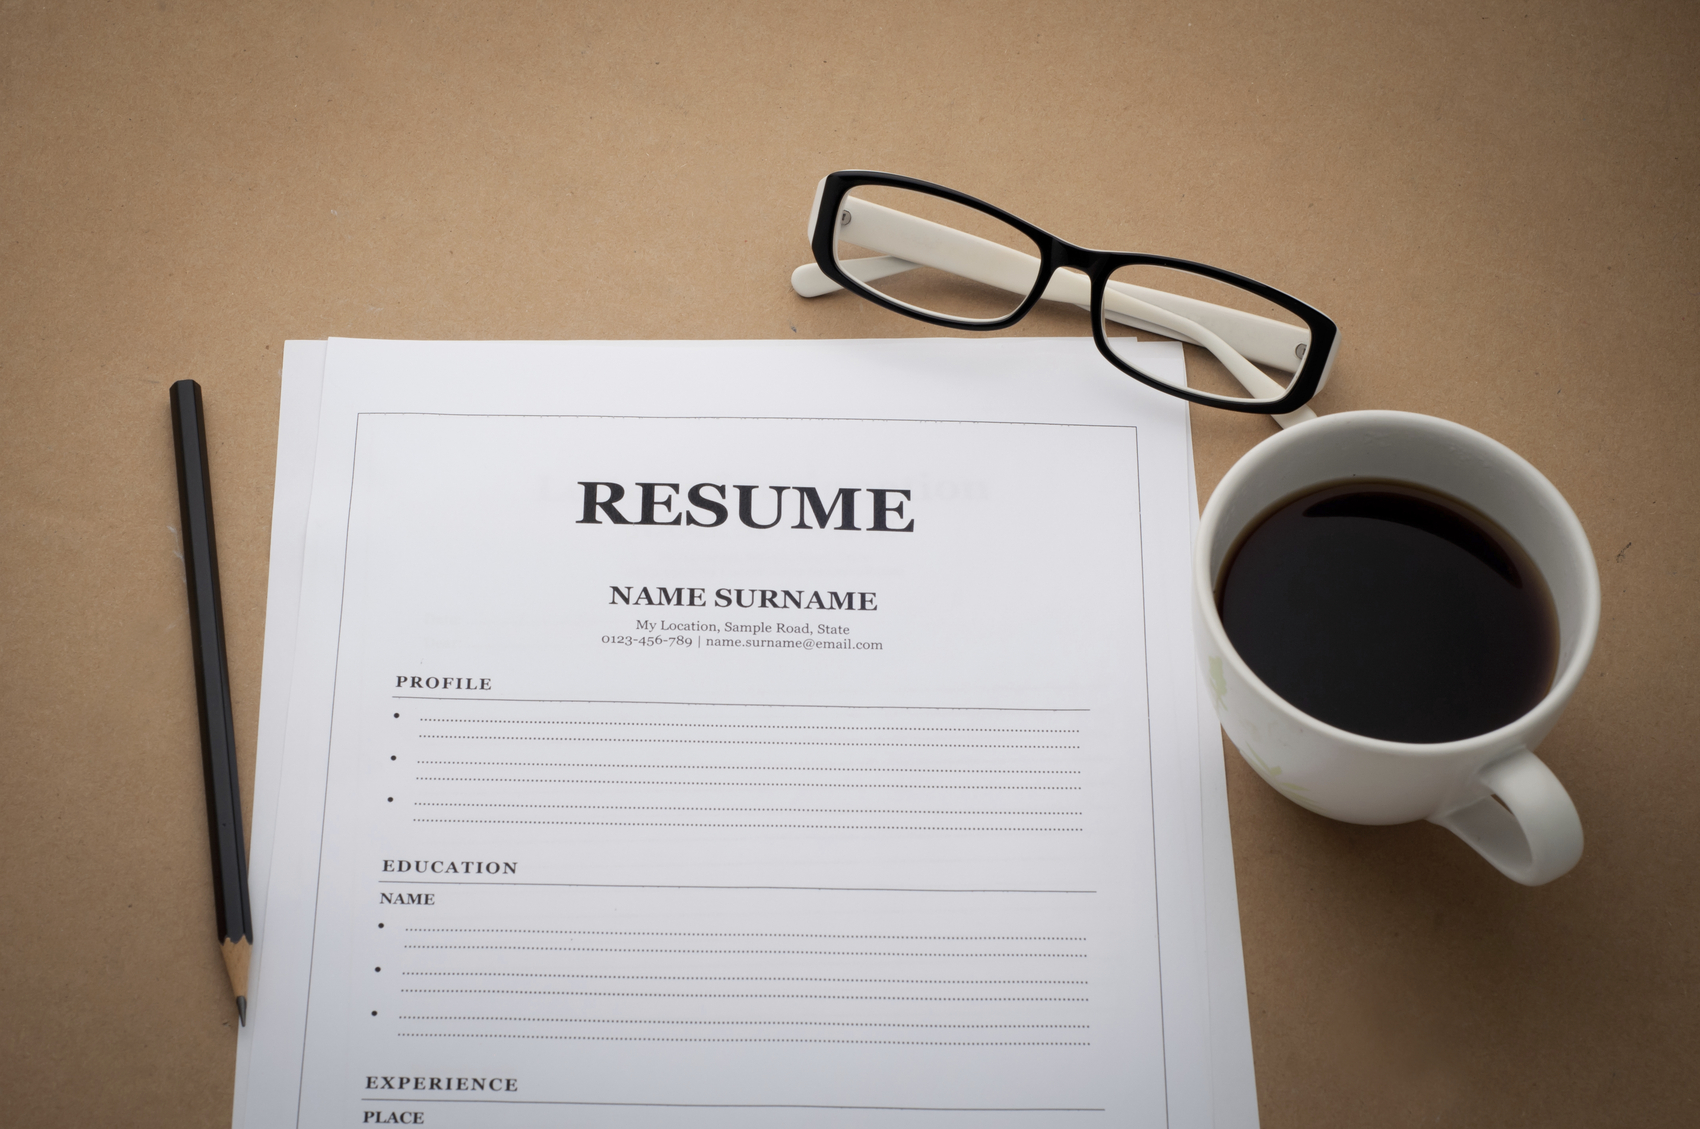 resume writing 101 vanderhouwen resume writing 101